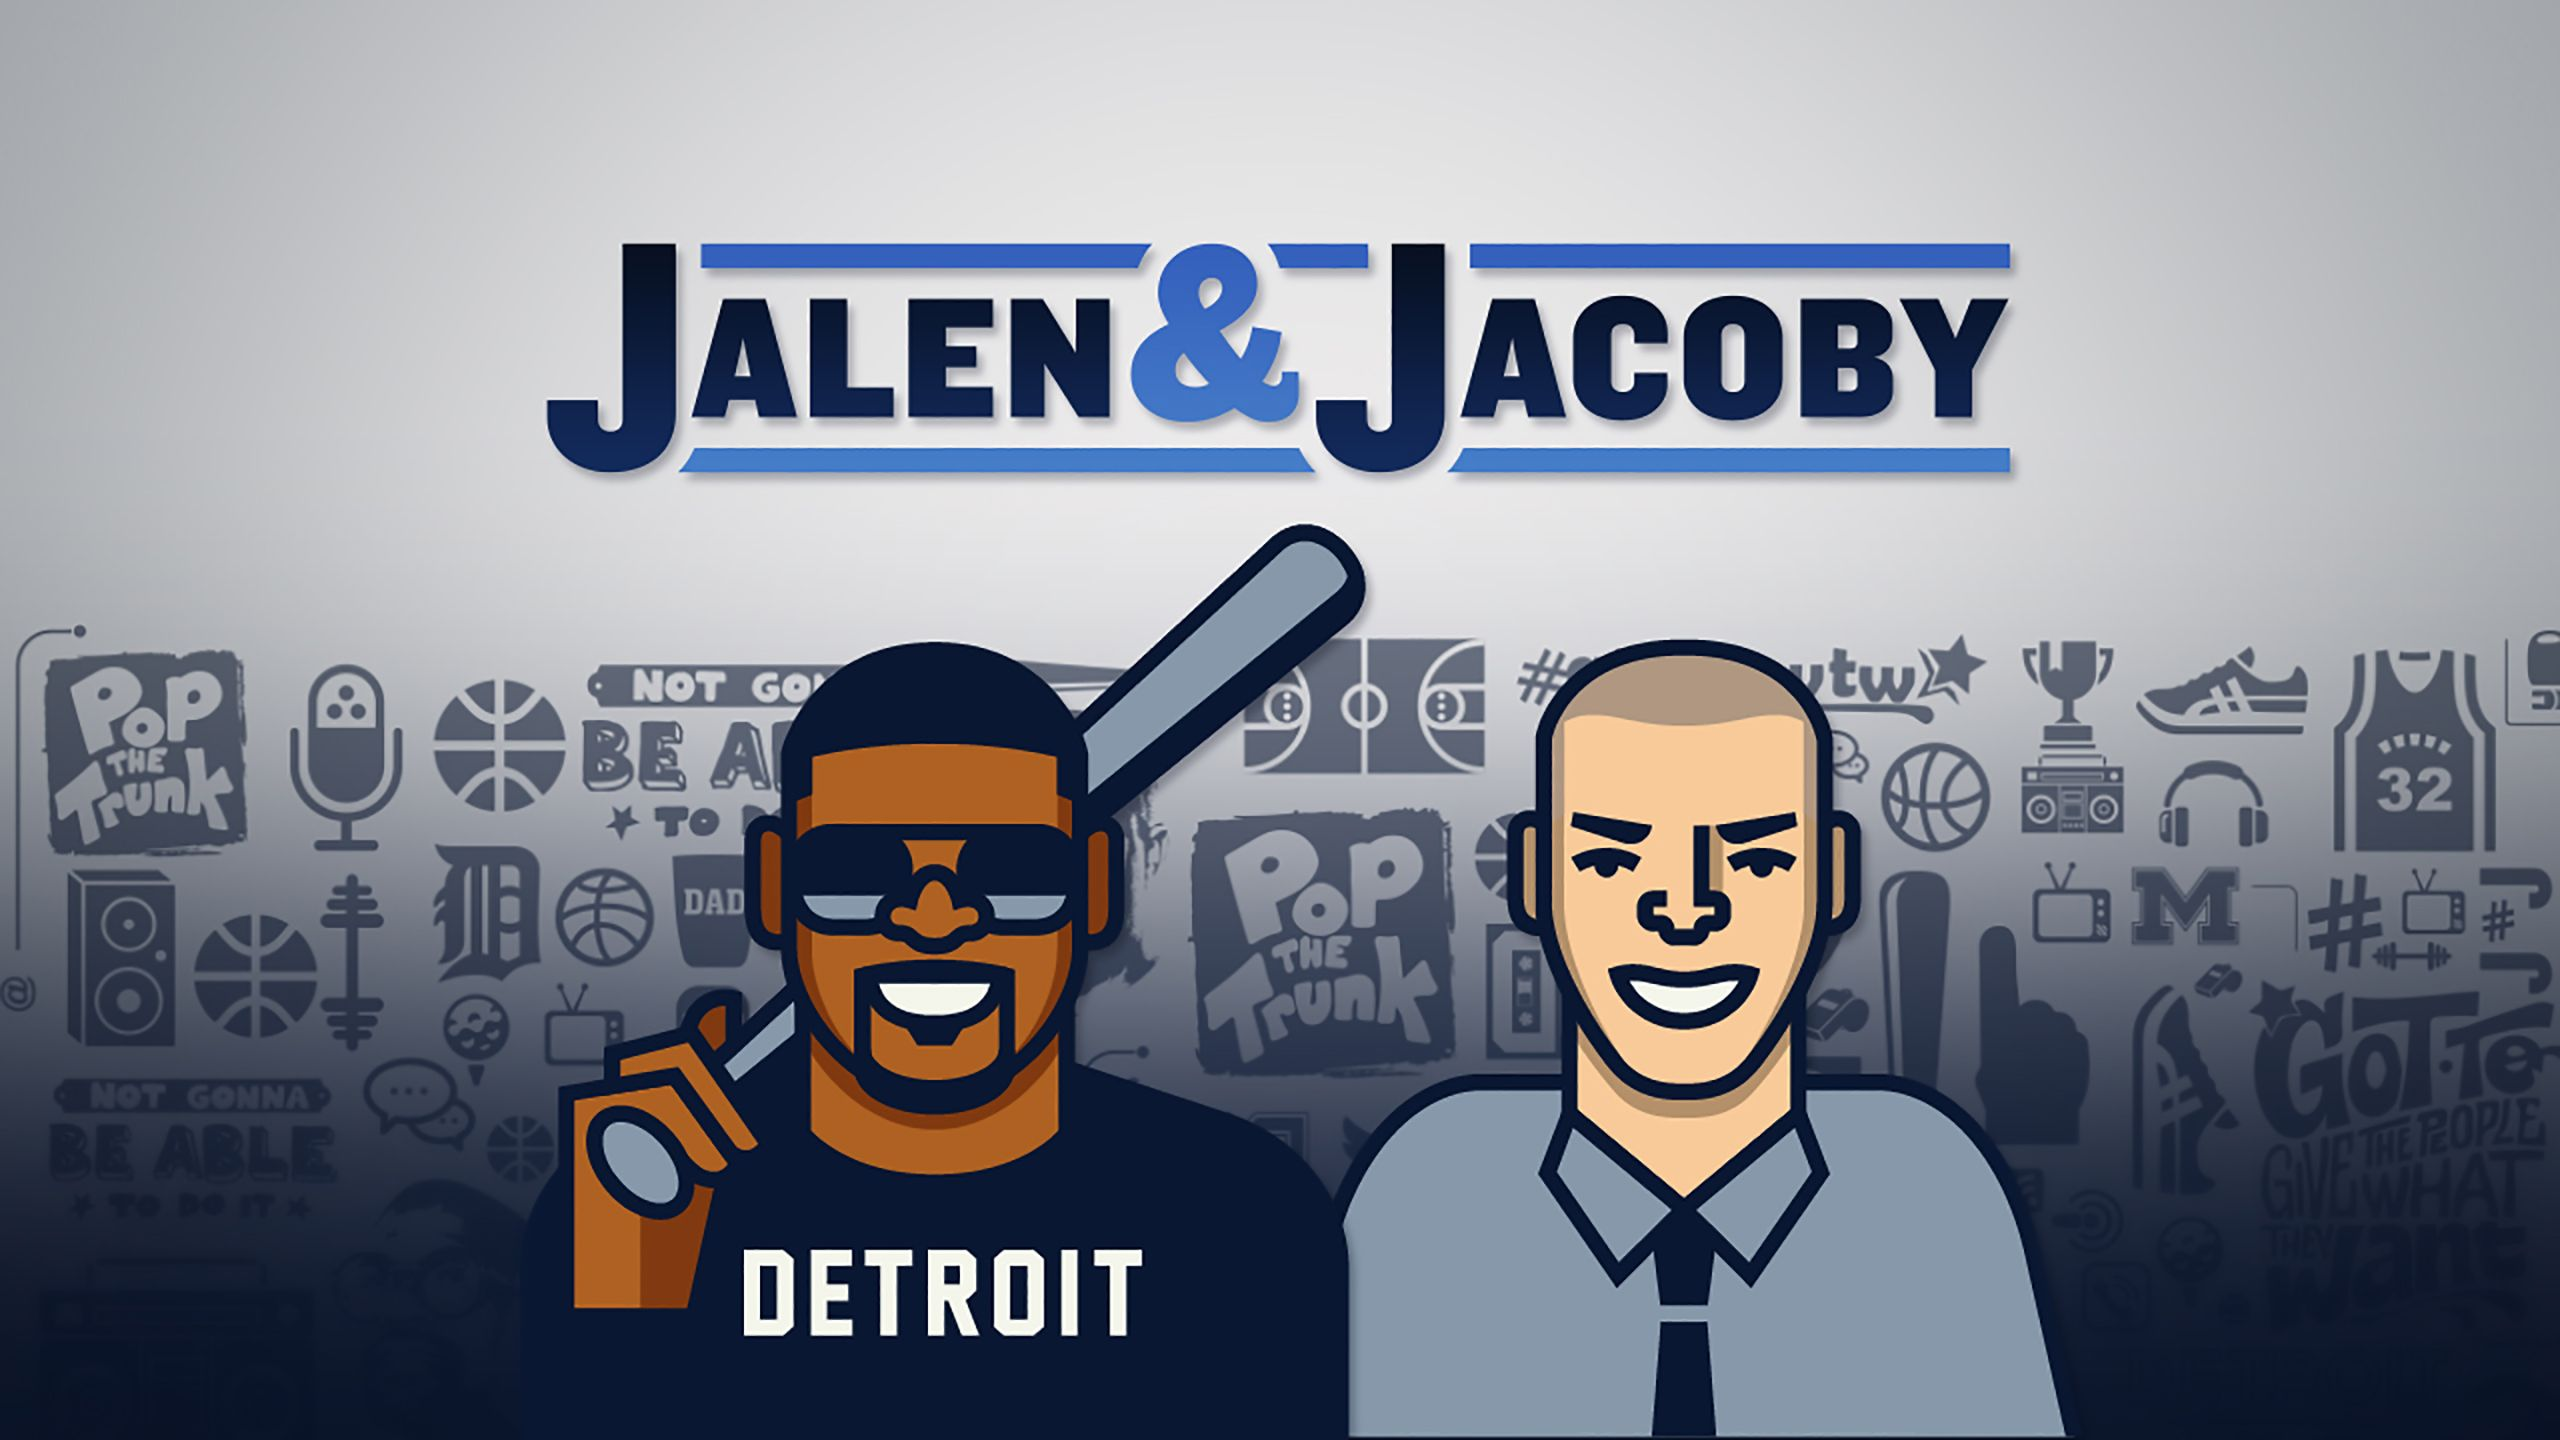 Wed, 6/20 - Jalen & Jacoby